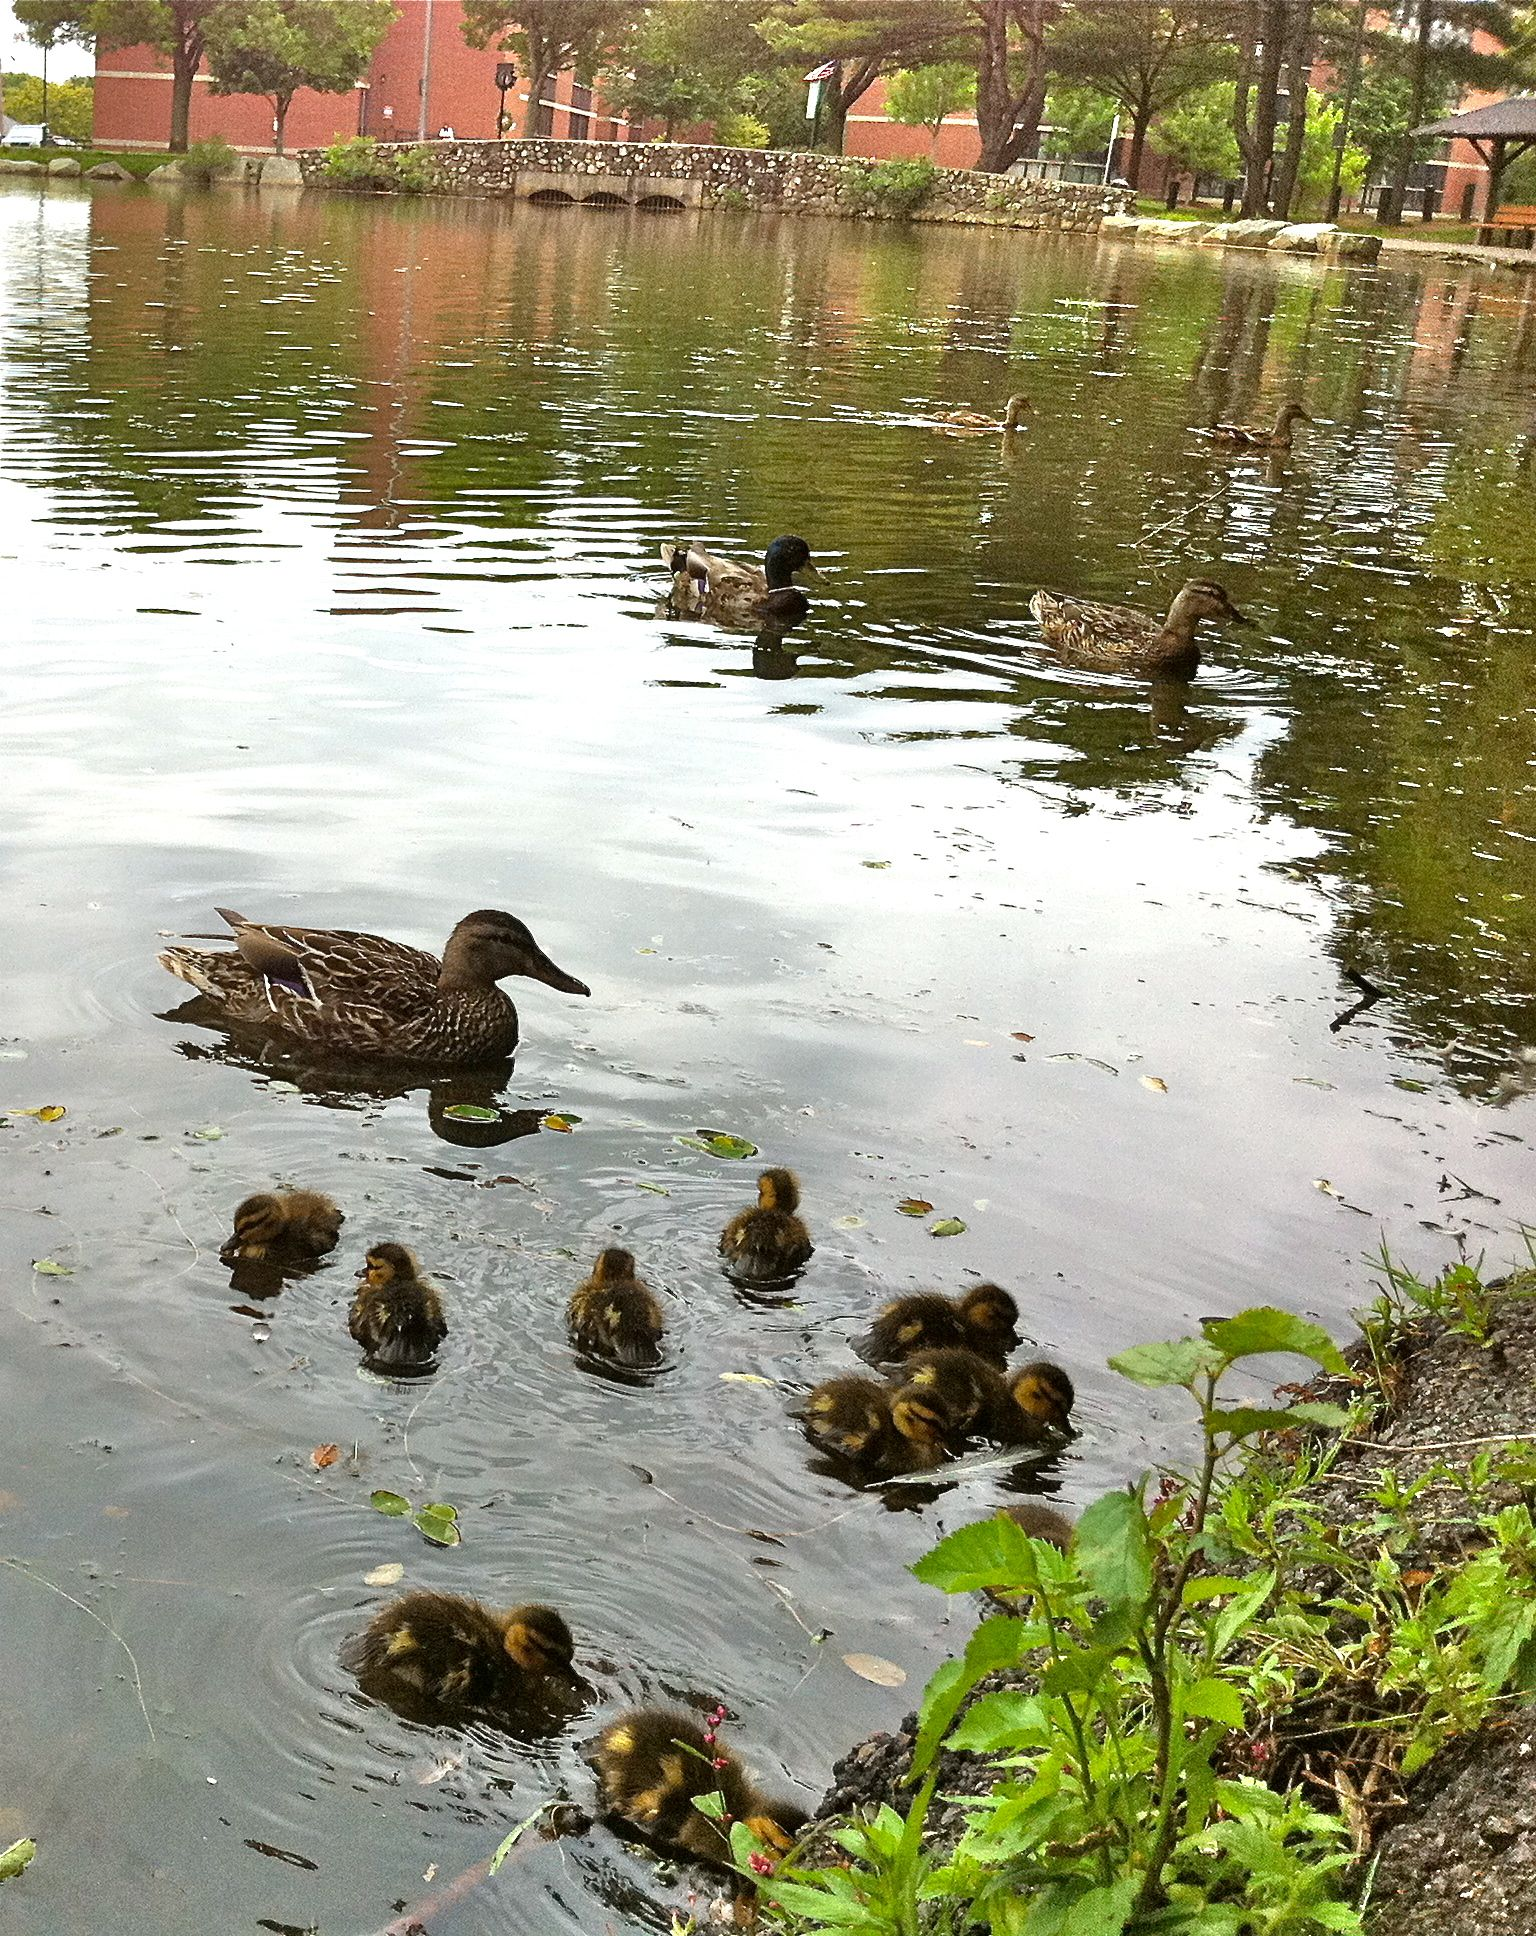 Ten baby ducks were swimming in Fellsmere Pond in Malden.